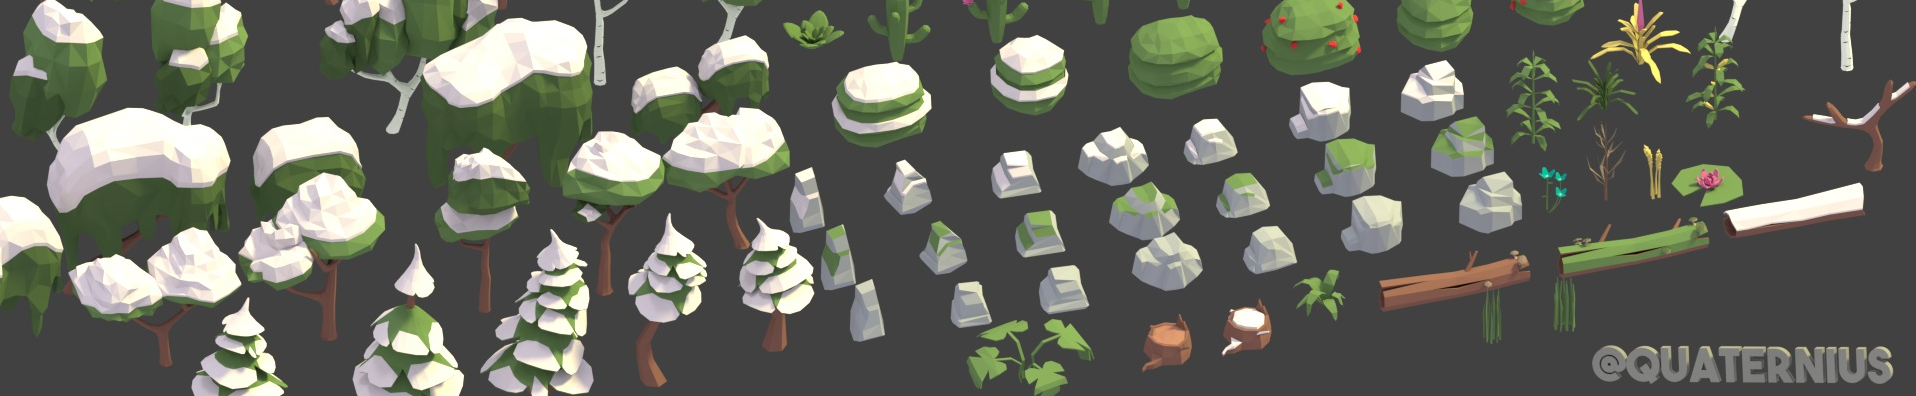 150+ LowPoly Nature Models